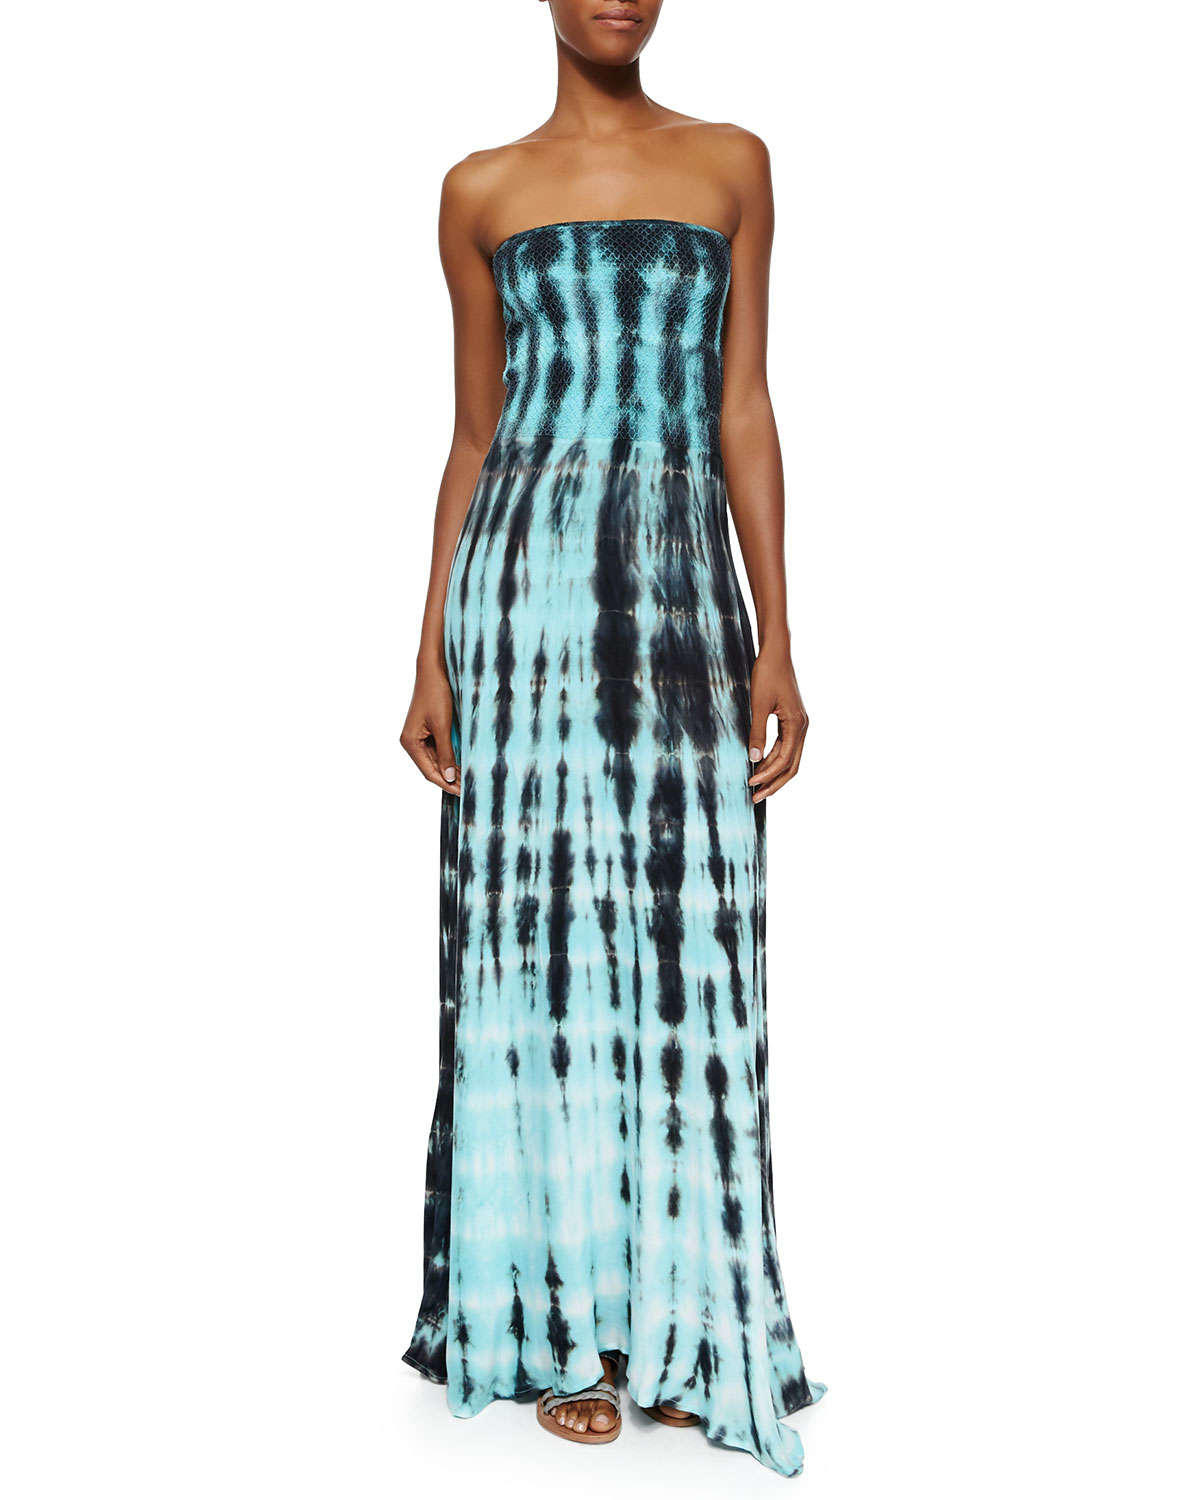 Women's Strapless Tie-Dye Maxi Dress, from Neiman Marcus